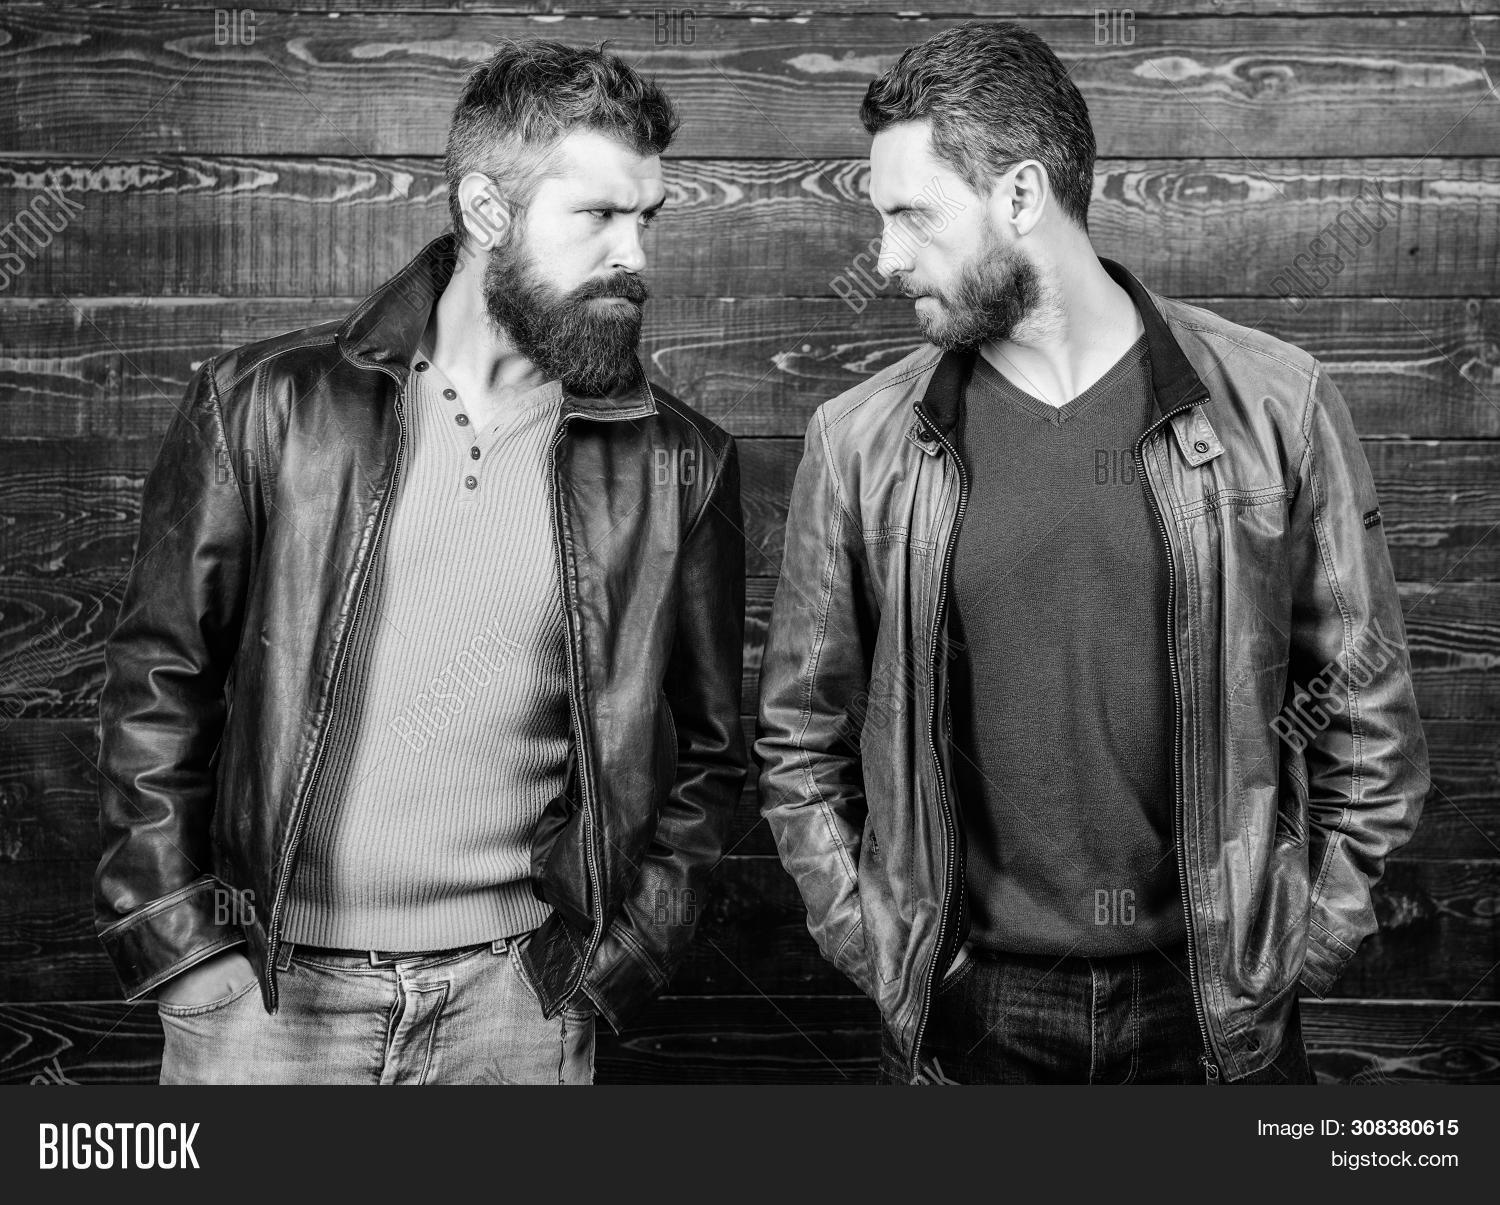 adult,appearance,attractive,attributes,barber,barbershop,beard,bearded,black,brutal,brutality,clothes,competitors,concept,confidence,confident,cool,exude,fashion,fashionable,feel,glance,guy,handsome,hipster,interconnection,jackets,leader,leadership,leather,macho,man,masculine,masculinity,mature,men,menswear,mustache,serious,strict,style,stylish,team,temper,true,unshaven,wear